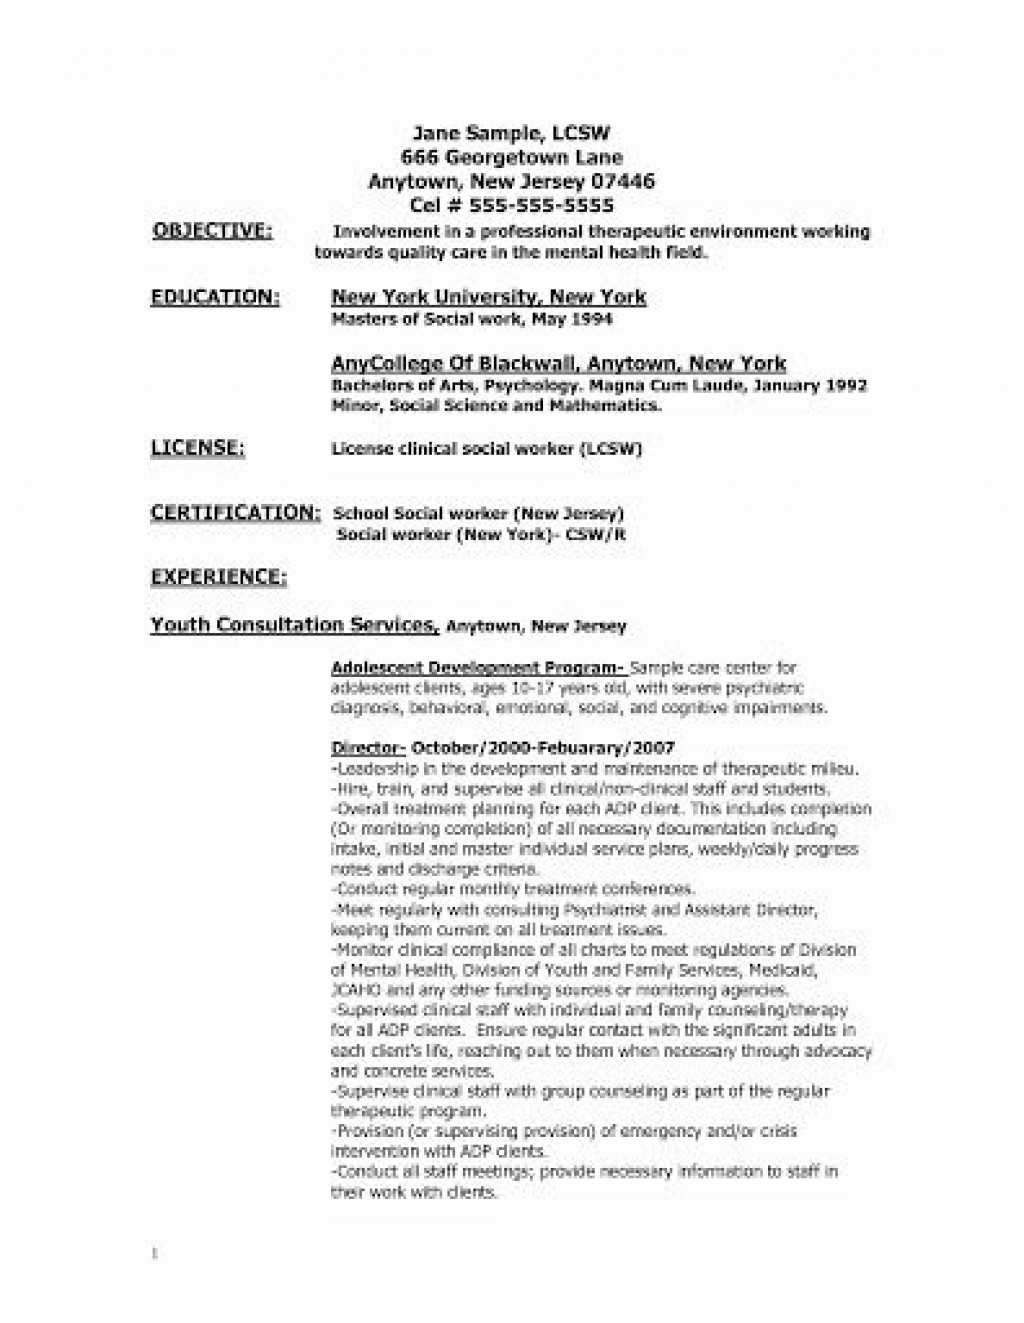 graduate school resume template addictionary sample for application objective best Resume Sample Resume For Graduate School Application Objective